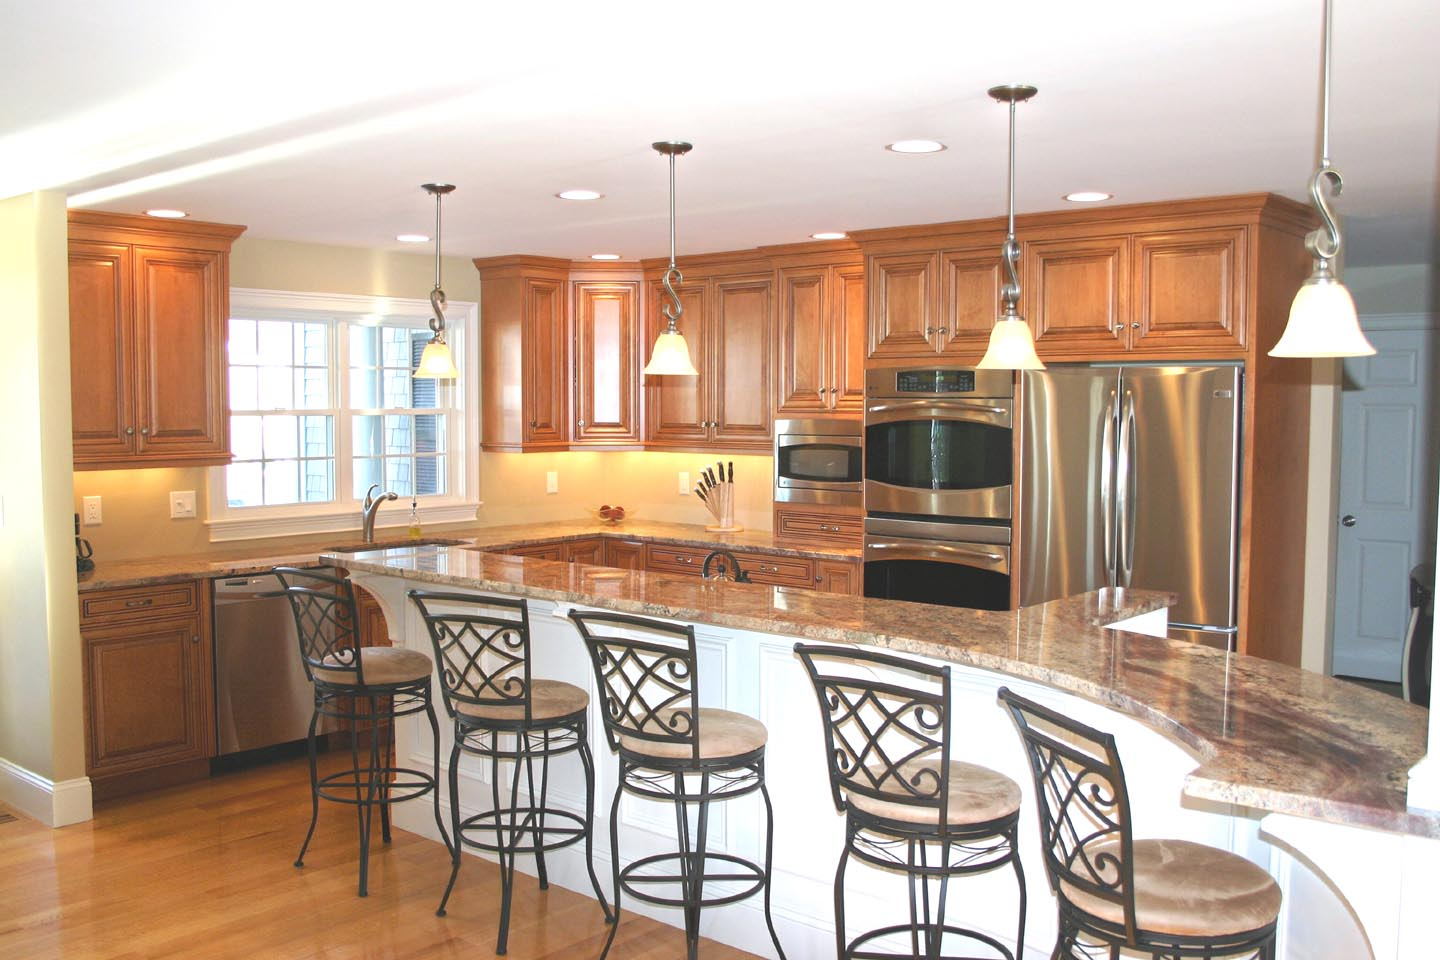 Custom Kitchen Cabinets Massachusetts Architectural Millwork Cabinet Making Boston Massachusetts